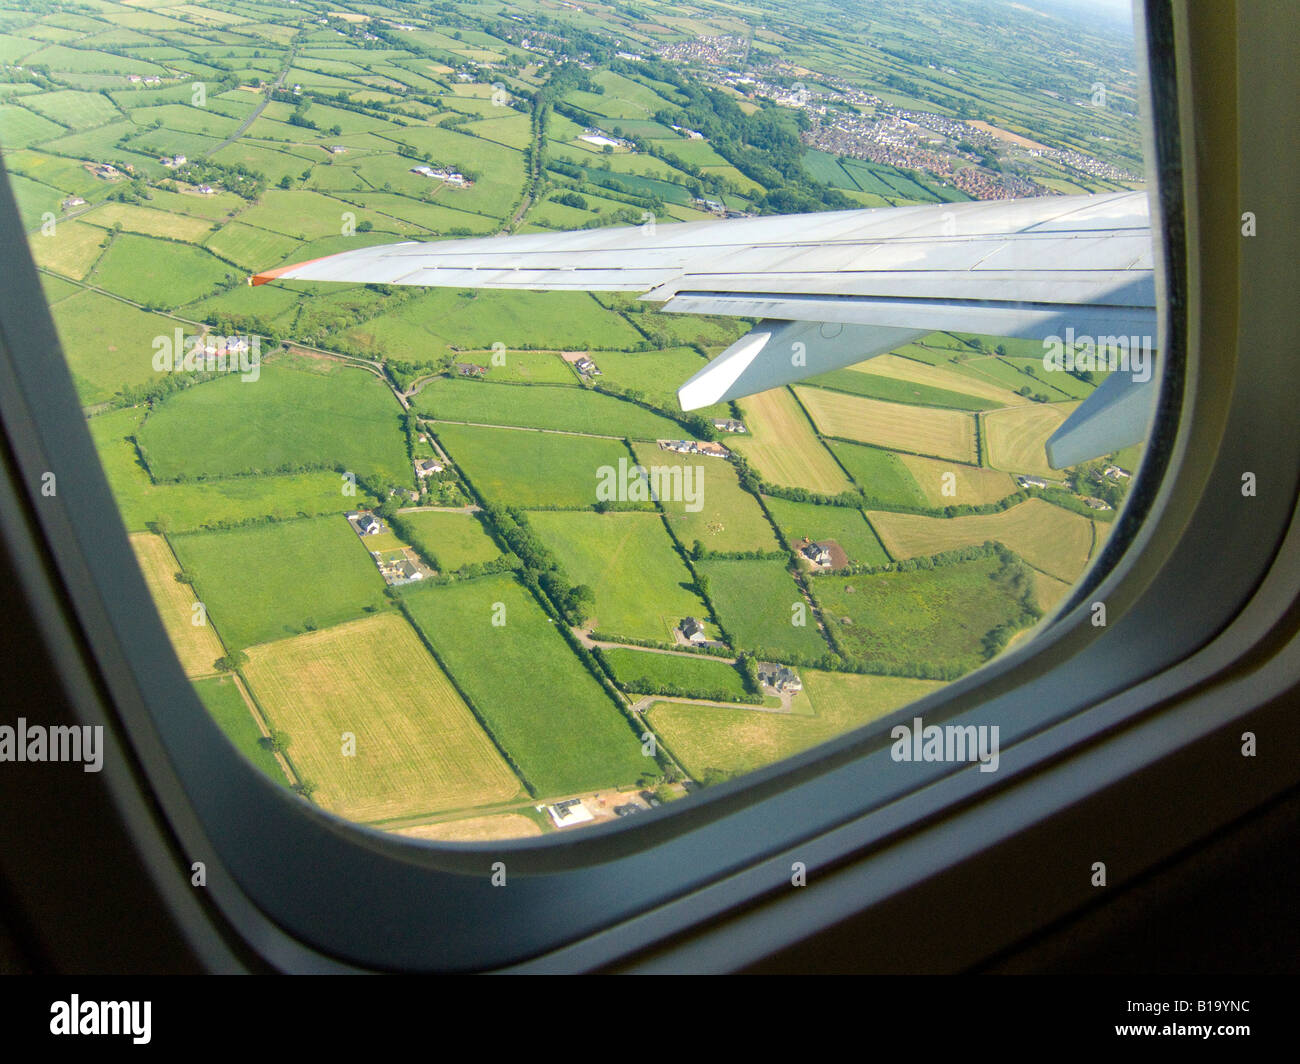 View from an aeroplane window during take off, - Stock Image